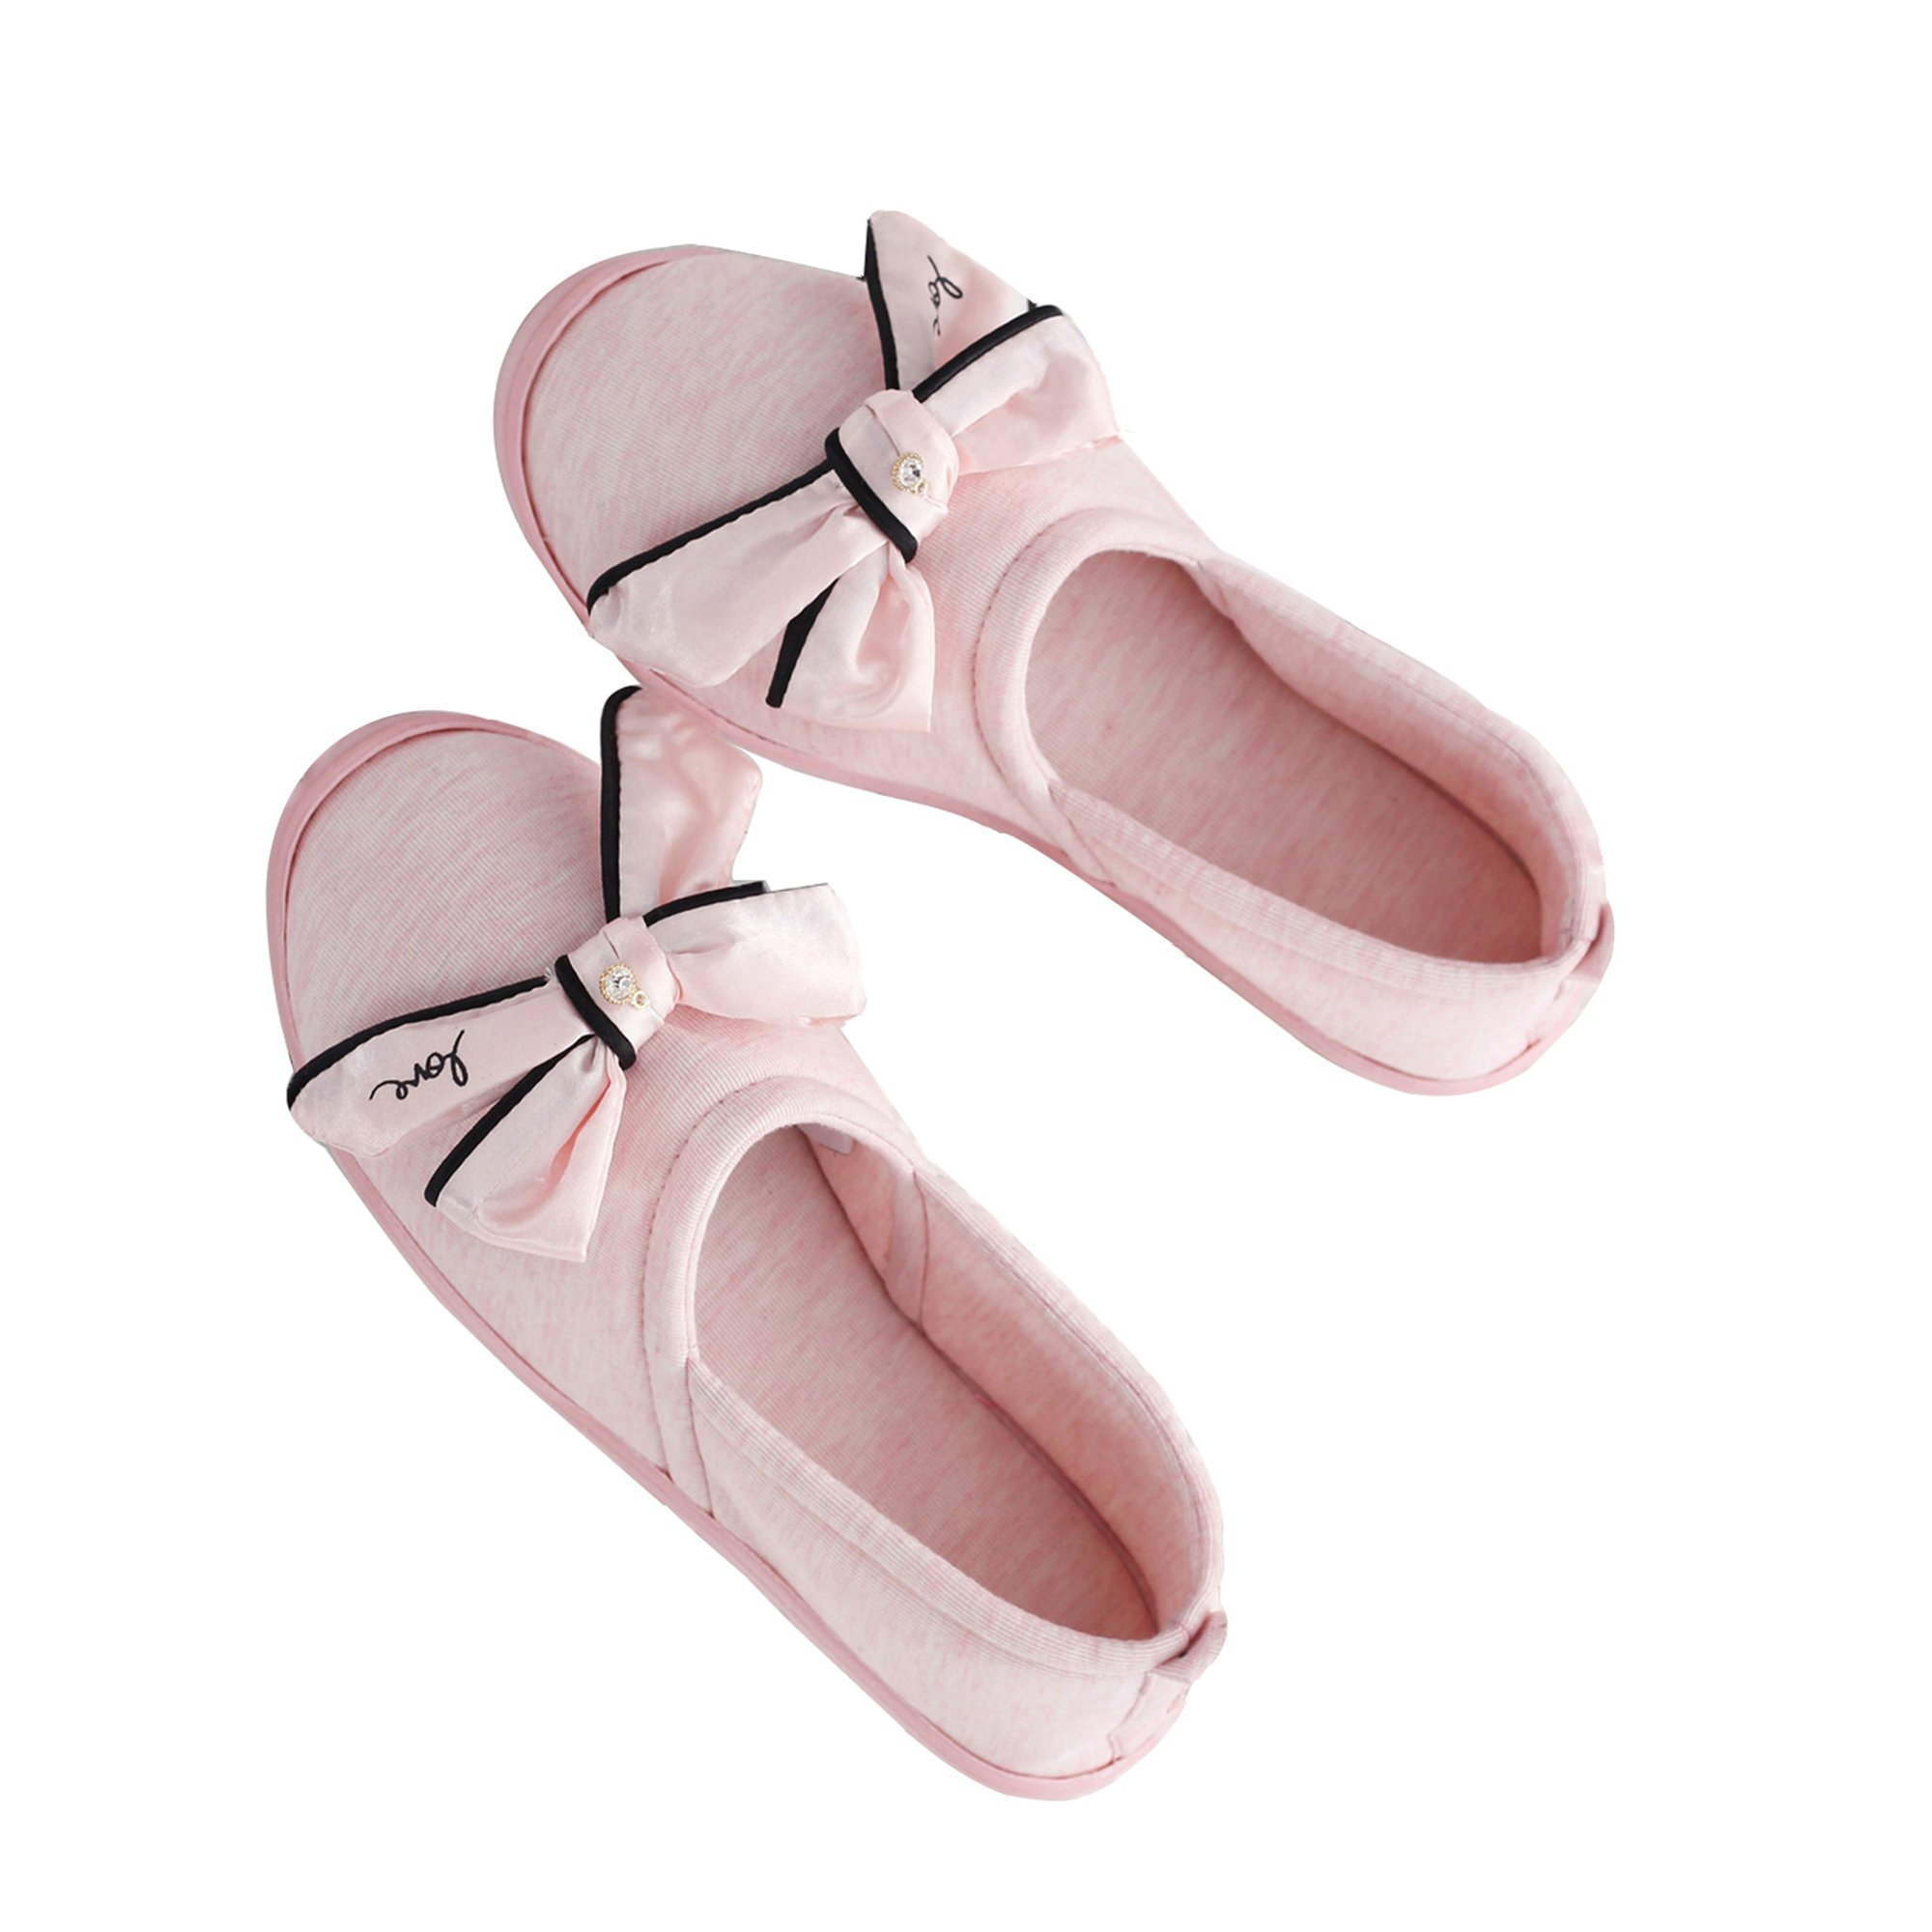 DRSLPAR Womens House Slippers Comfort Closed Back Cotton Slippers with Bow Anti-Slip Home Shoes Grey M